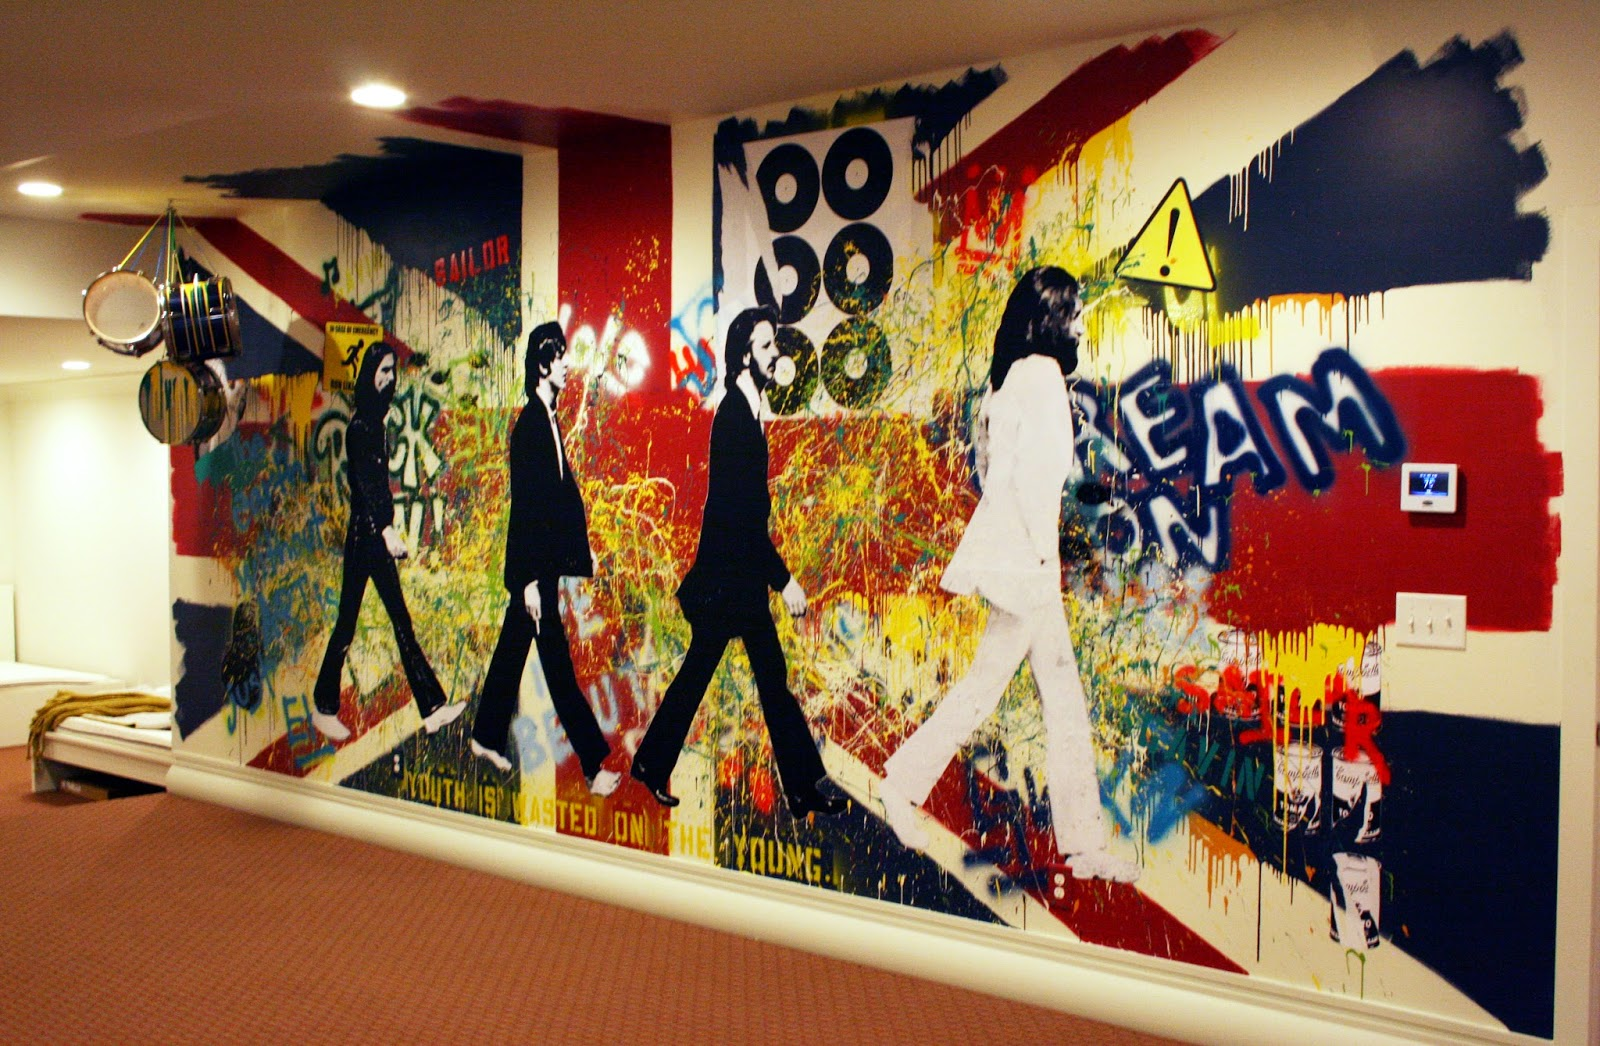 Rock And Roll Themed Room Kathryn Godwin Visual Artist Graffiti Wall Mural Behind